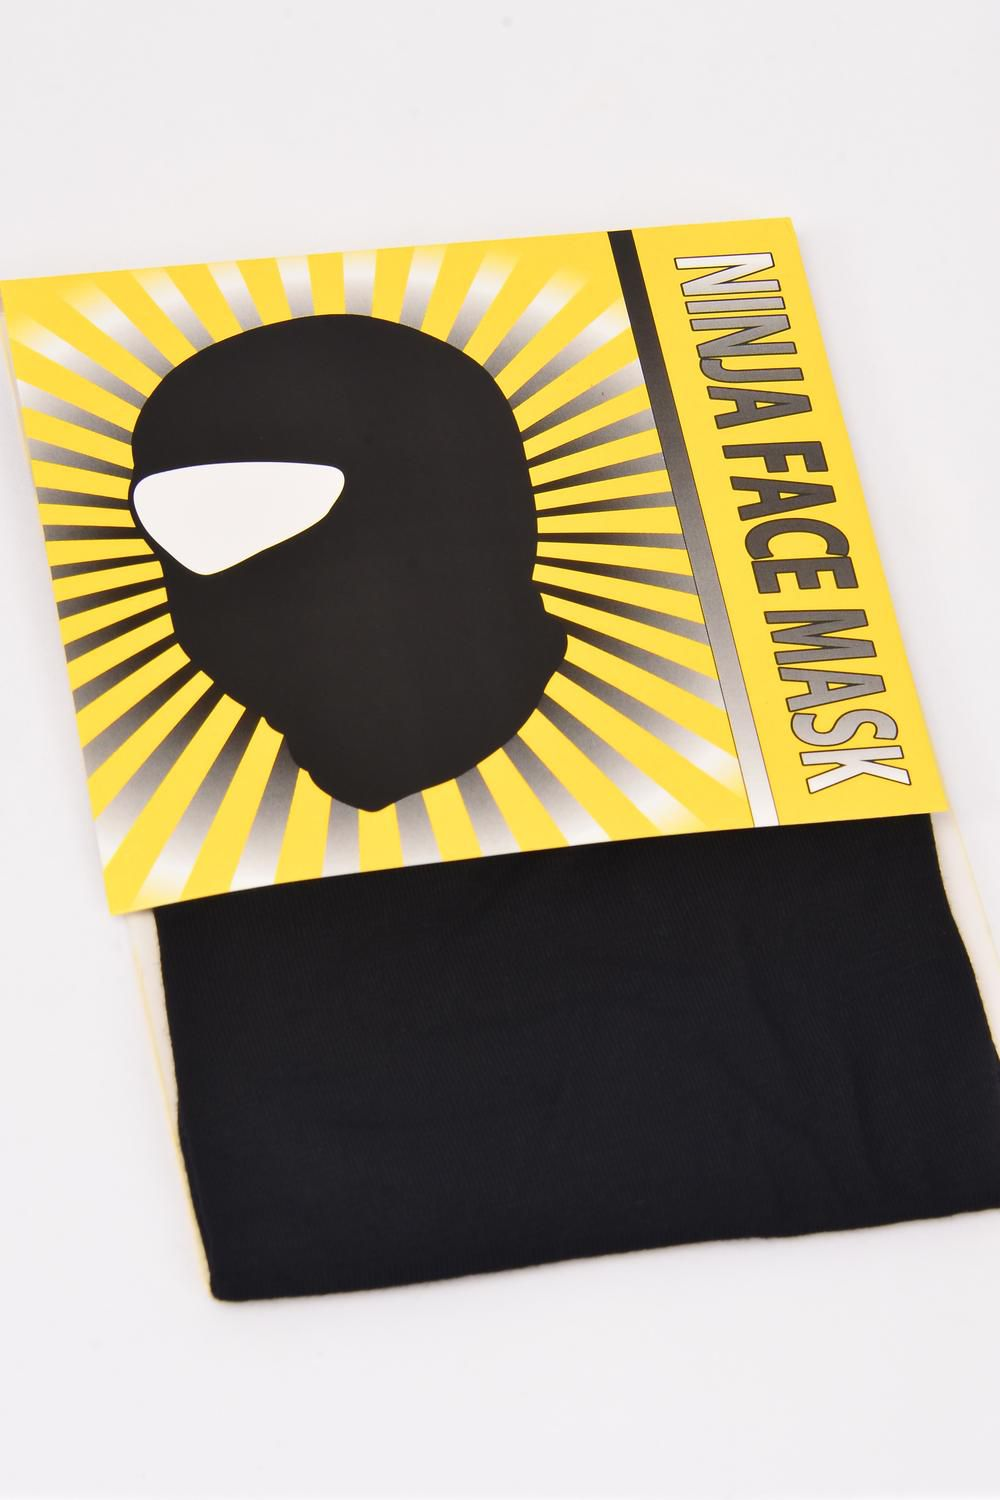 Ninja Face Mask Black Cotton Polyester/DZ Soft & Stretch Cotton/Spandex Sport Fabric,Display Card & OPP Bag & UPC Code -